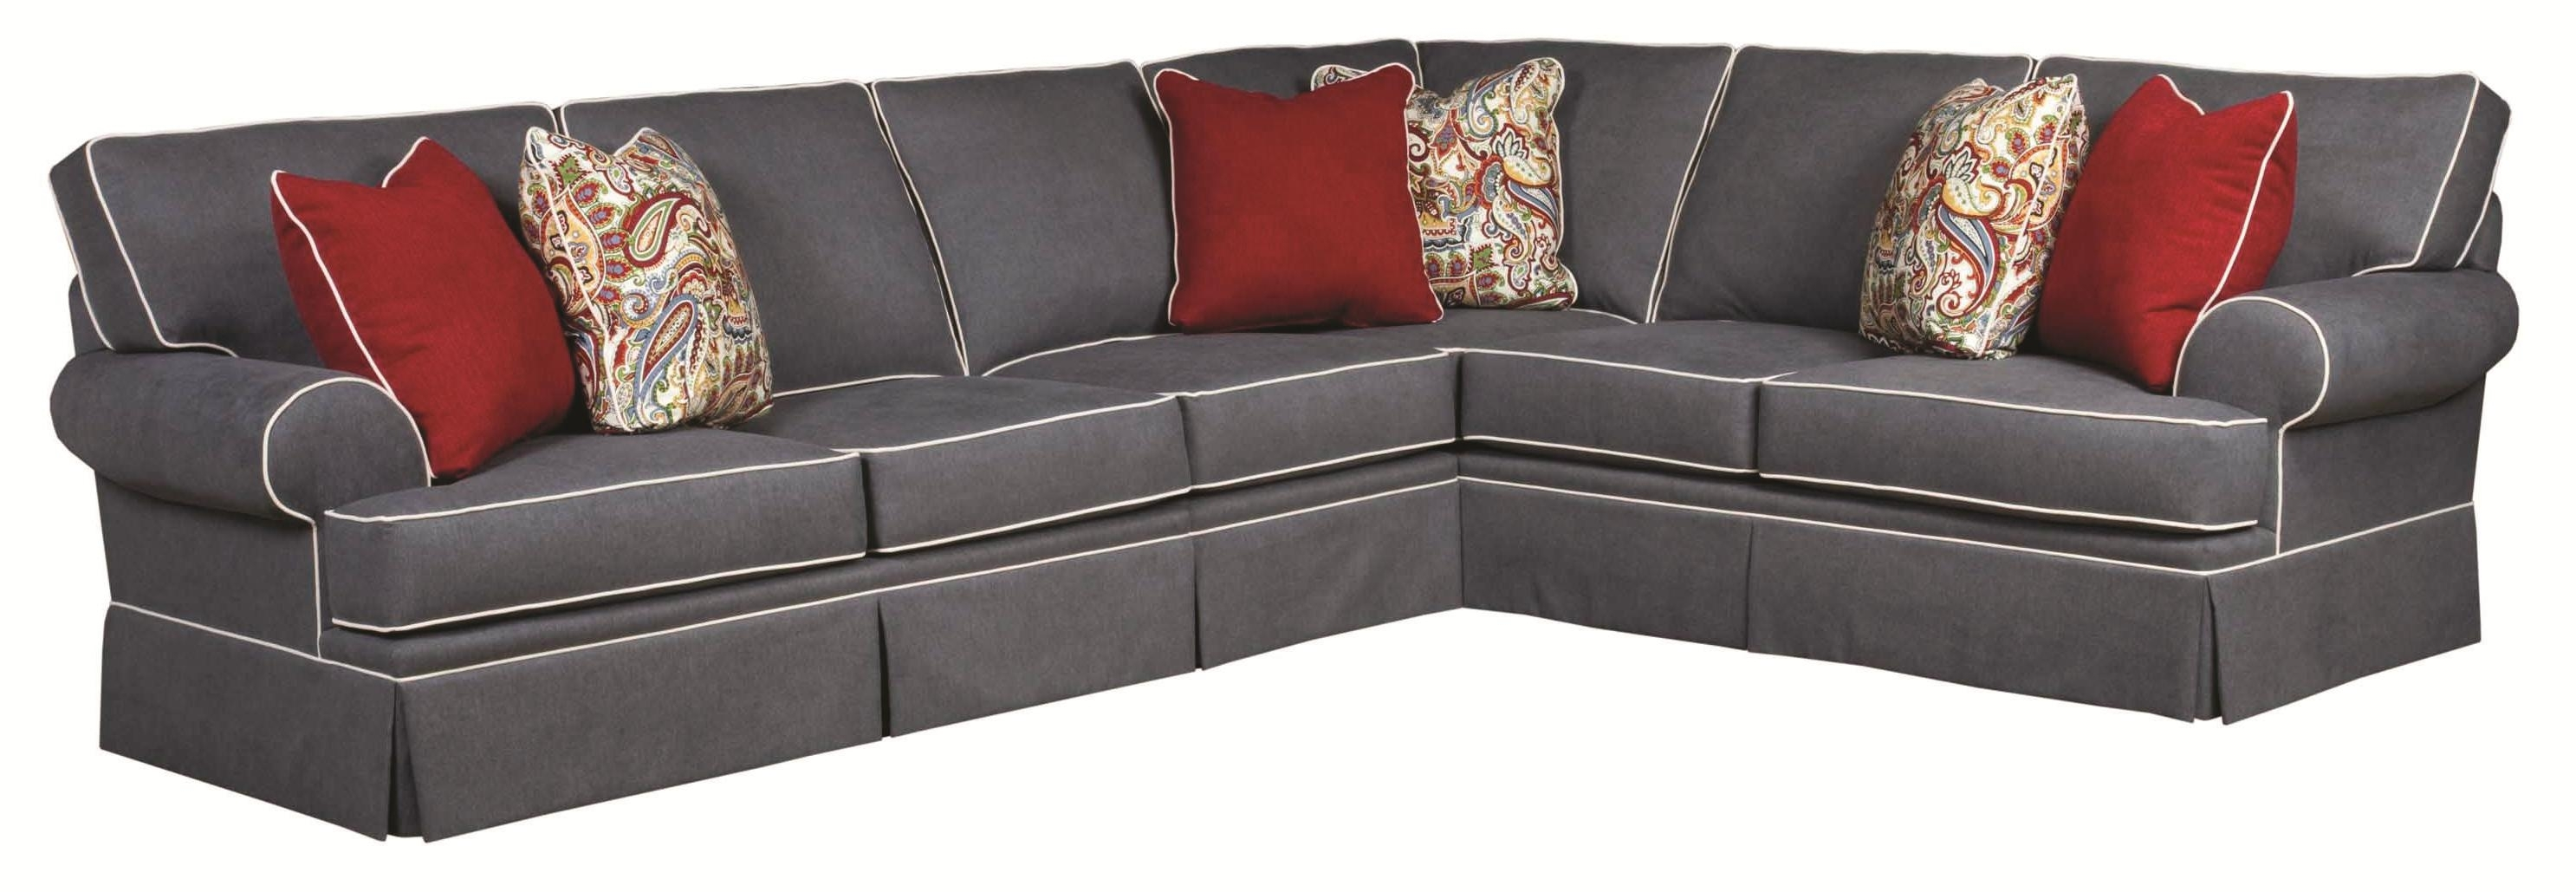 Broyhill Furniture Emily Traditional 3 Piece Sectional Sofa With Intended For Sam Levitz Sectional Sofas (View 6 of 10)